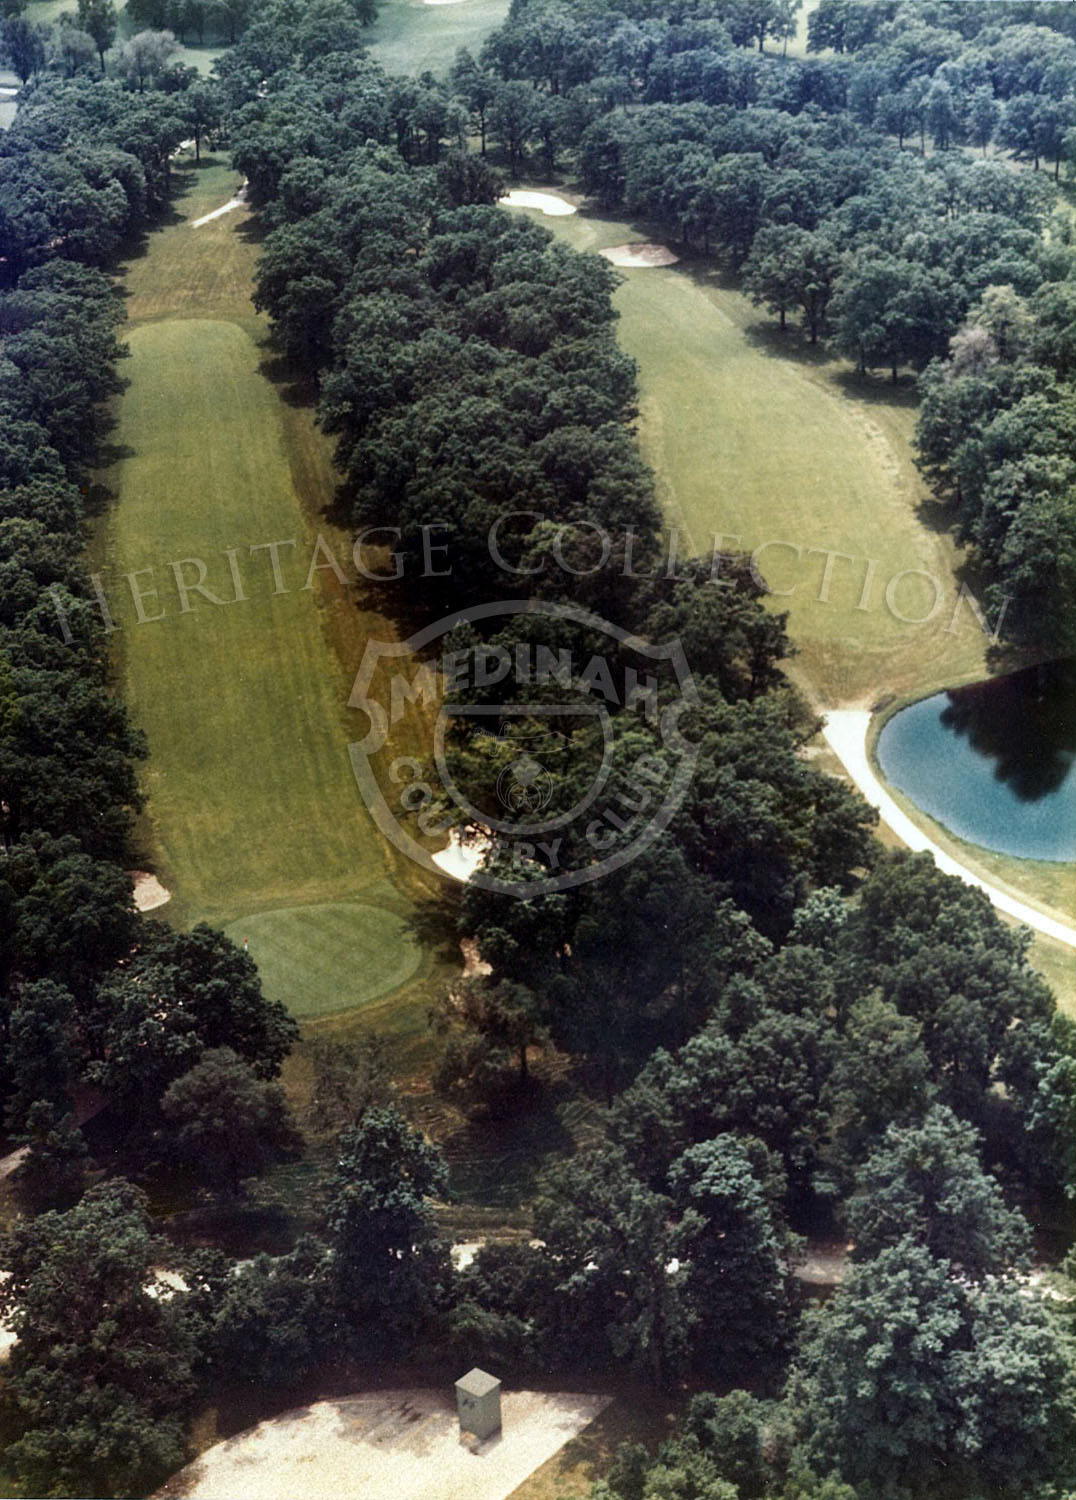 1975 Aerial view of Hole 4 of Course No. 3. It is a testing par-4 of 446 yards tree-lined from tee to elevated green